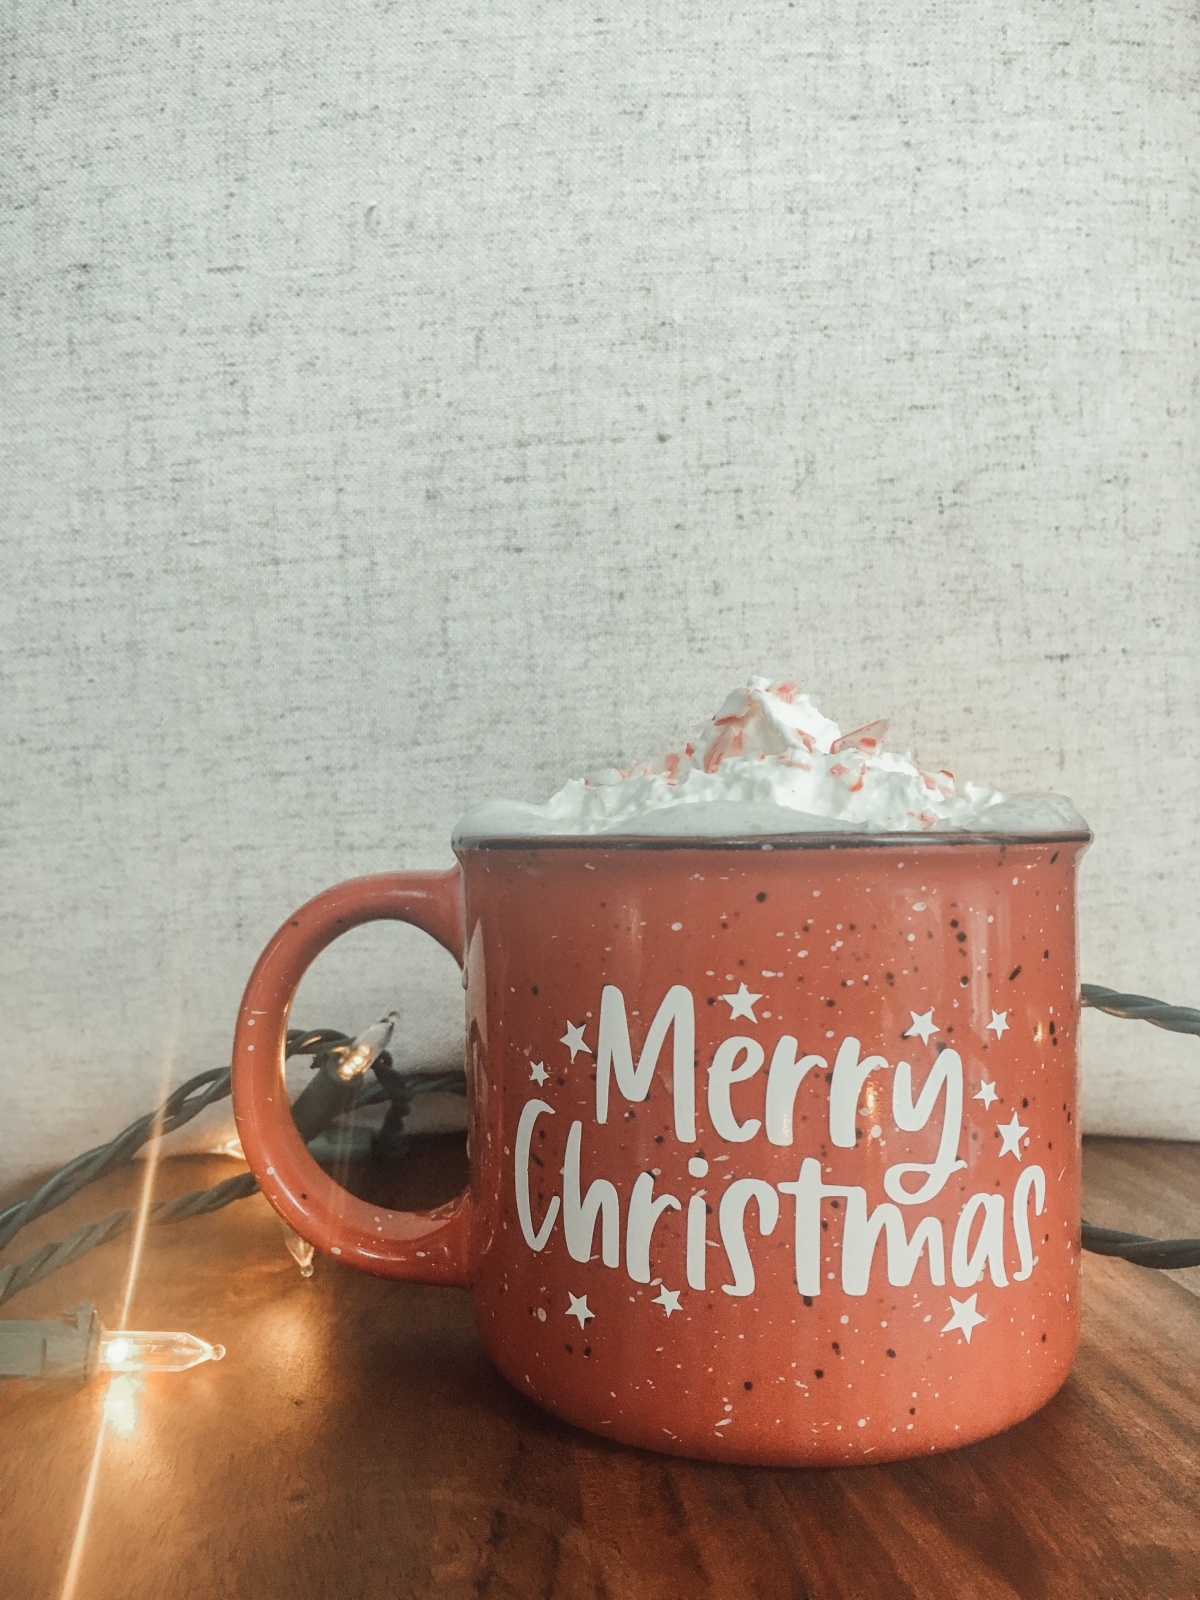 Mug review and my favorite hot cocoa recipe! *cue the Christmas tunes and posts*